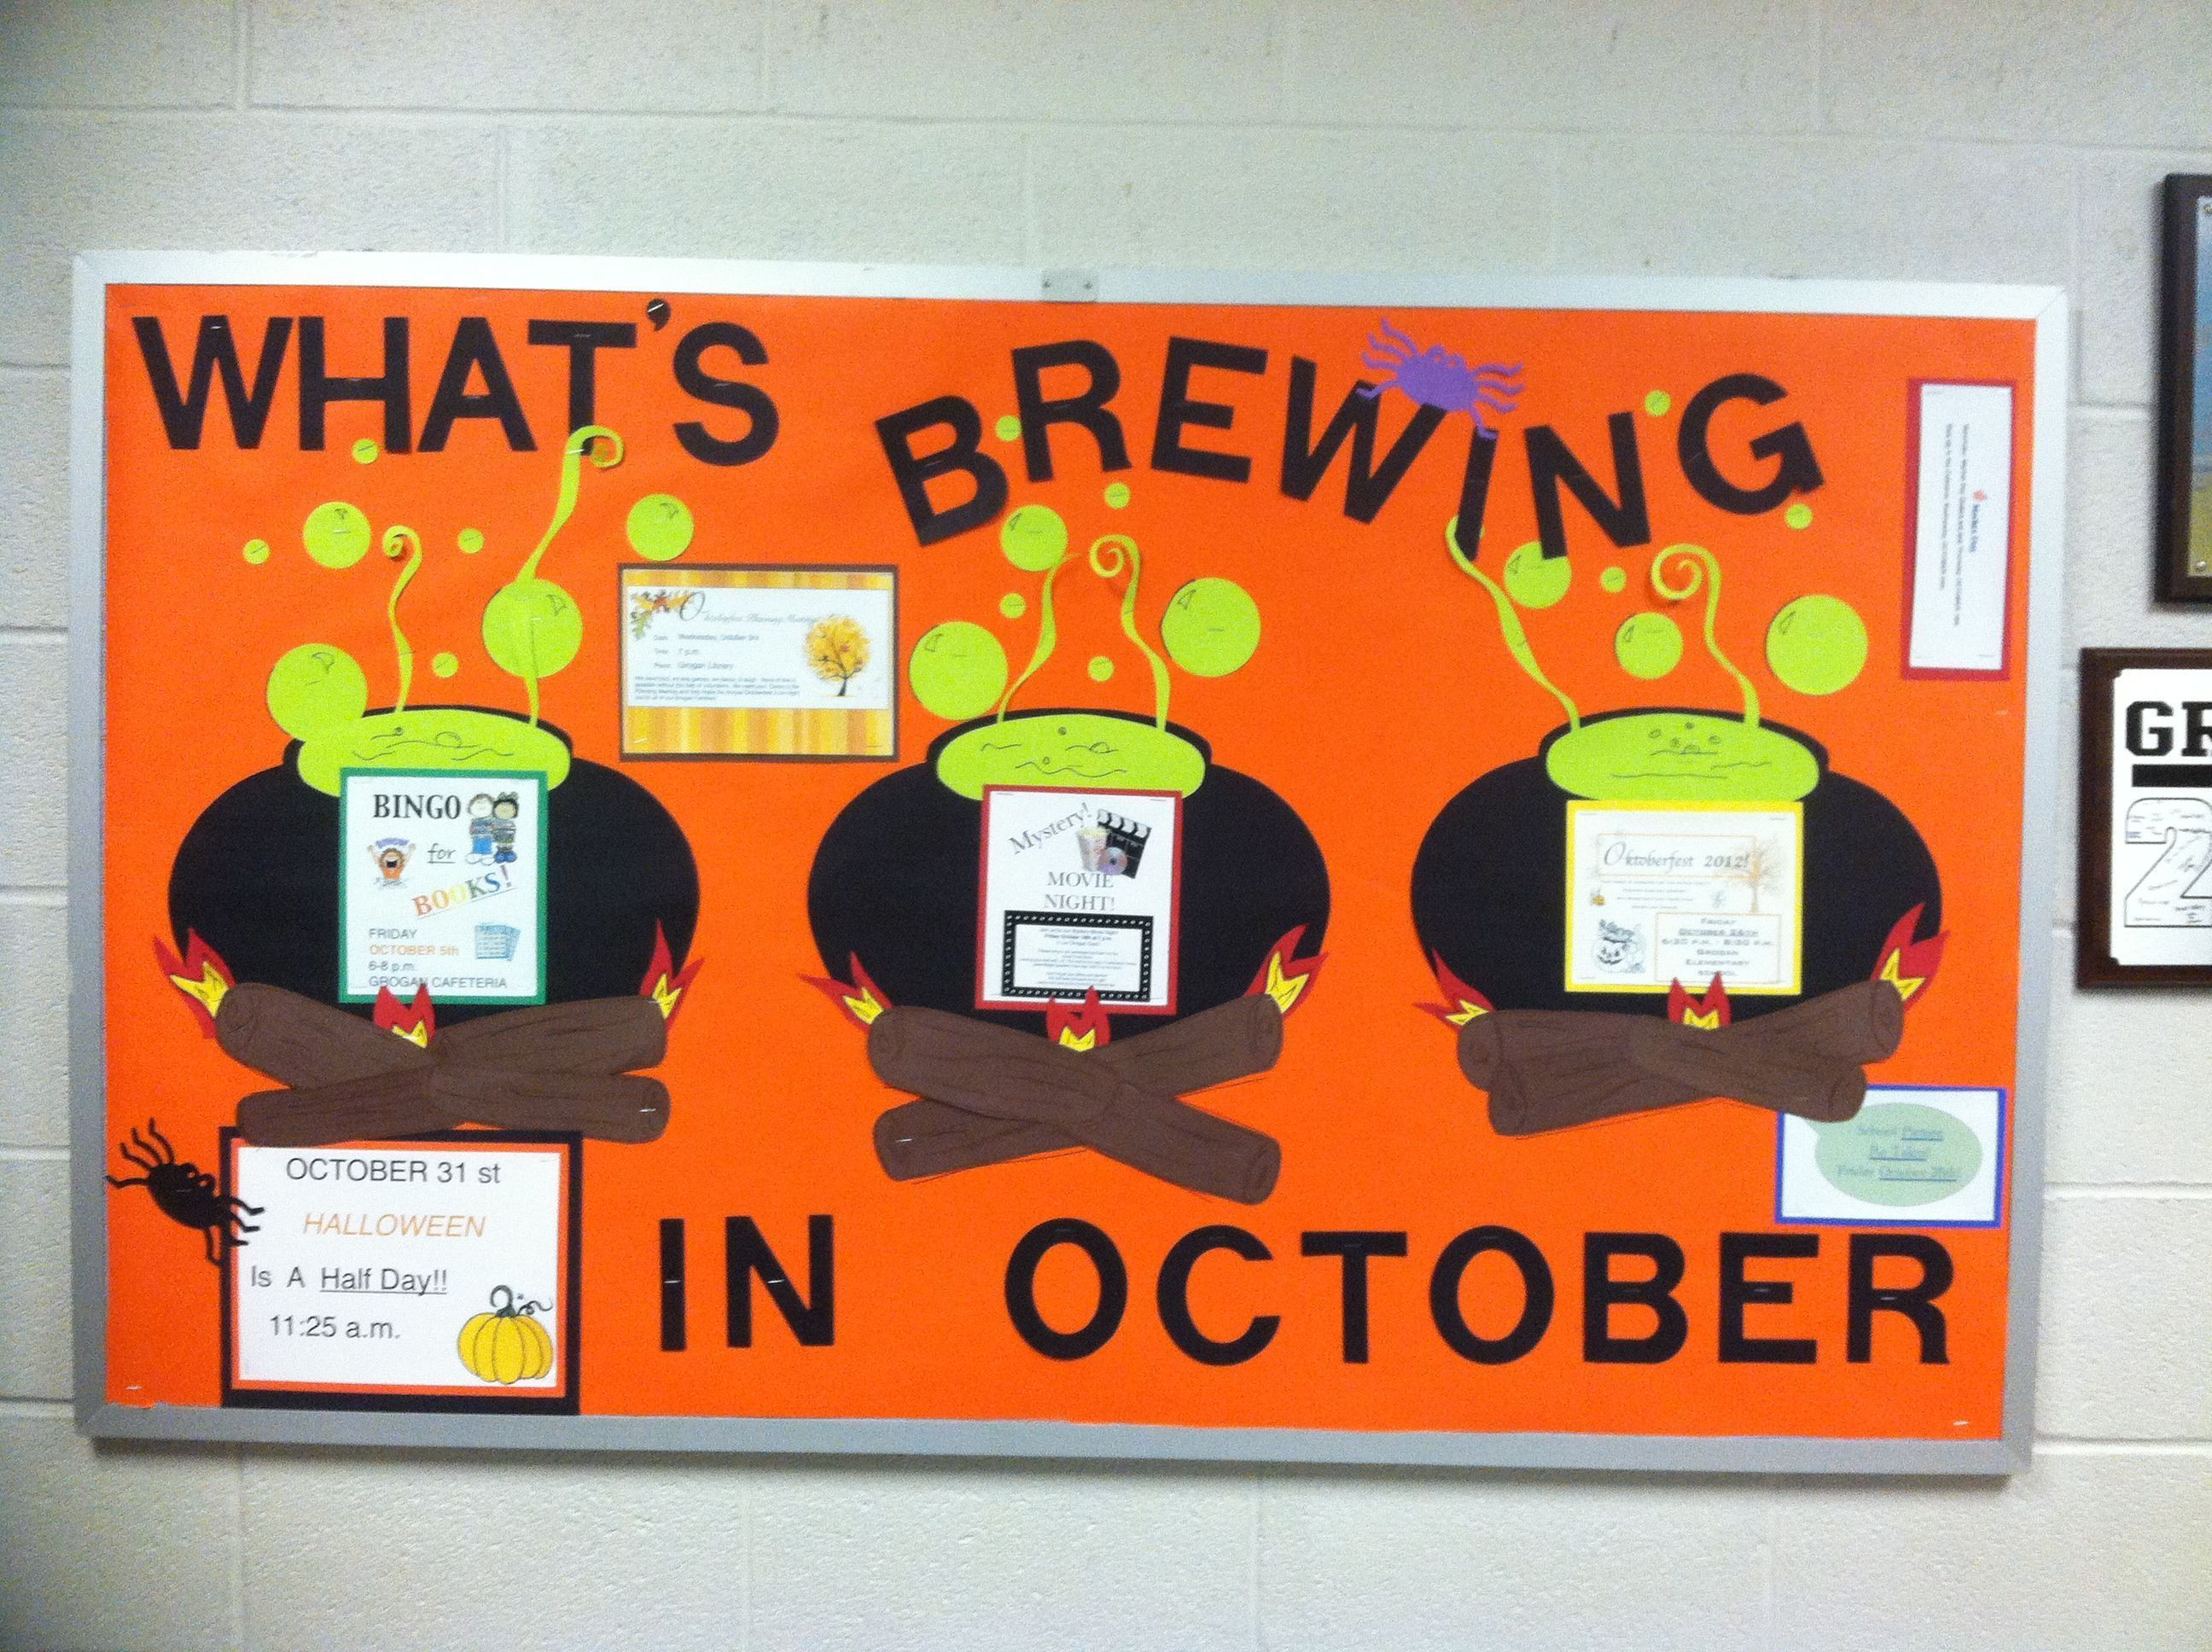 What's Brewing in October PTO information bulletin board #octoberbulletinboards What's Brewing in October PTO information bulletin board #rabulletinboards What's Brewing in October PTO information bulletin board #octoberbulletinboards What's Brewing in October PTO information bulletin board #rabulletinboards What's Brewing in October PTO information bulletin board #octoberbulletinboards What's Brewing in October PTO information bulletin board #rabulletinboards What's Brewing in October PTO infor #rabulletinboards